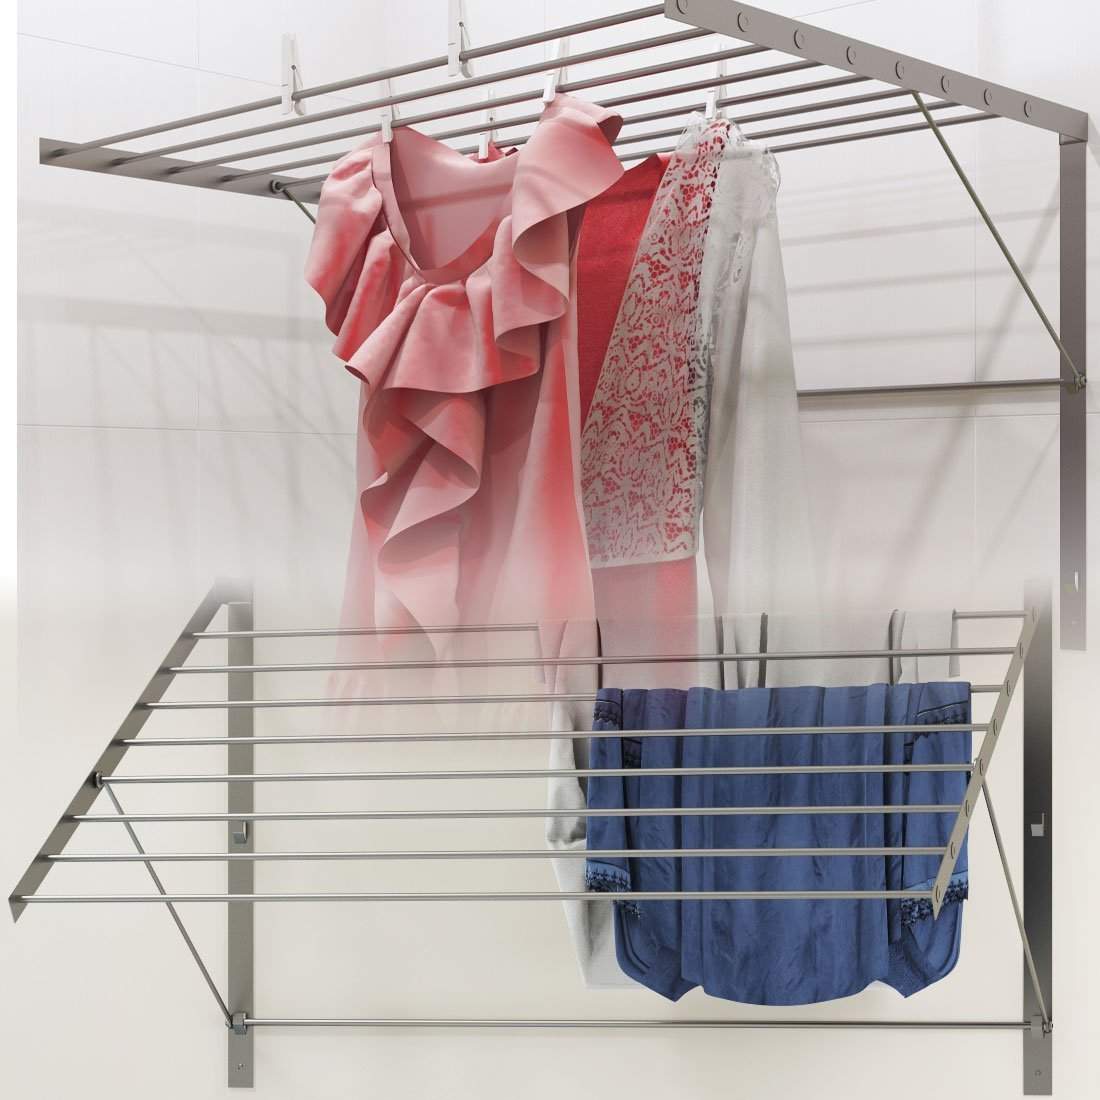 Brightmaison Clothes Drying Rack Stainless Steel Wall Mounted Folding Adjustable Collapsible, 6.5 Yards Drying Capacity BGT